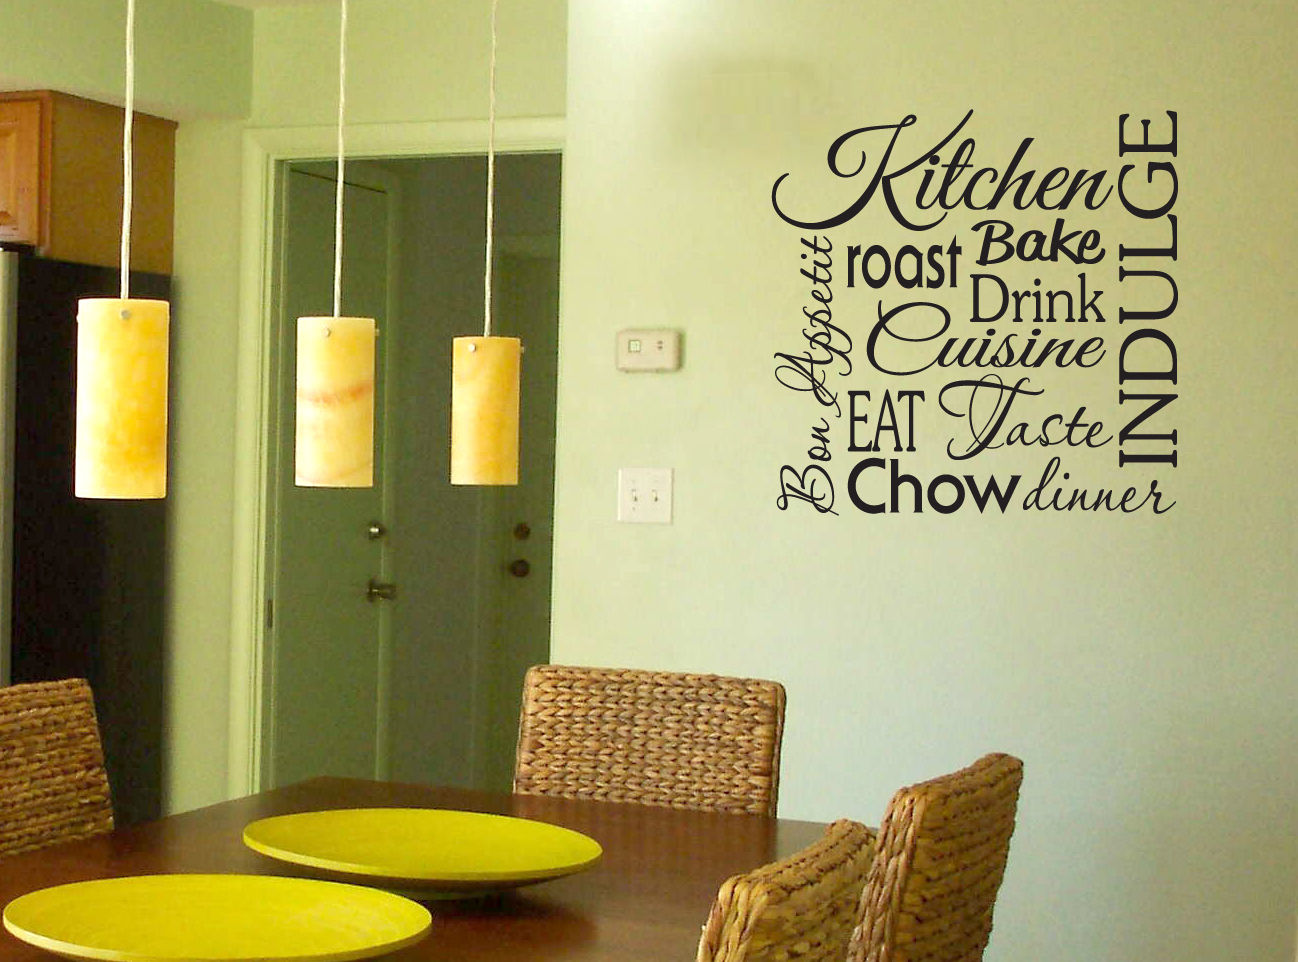 D468 Kitchen Words vinyl wall lettering quote decal/sticker bake drink eat dinner(China (Mainland))